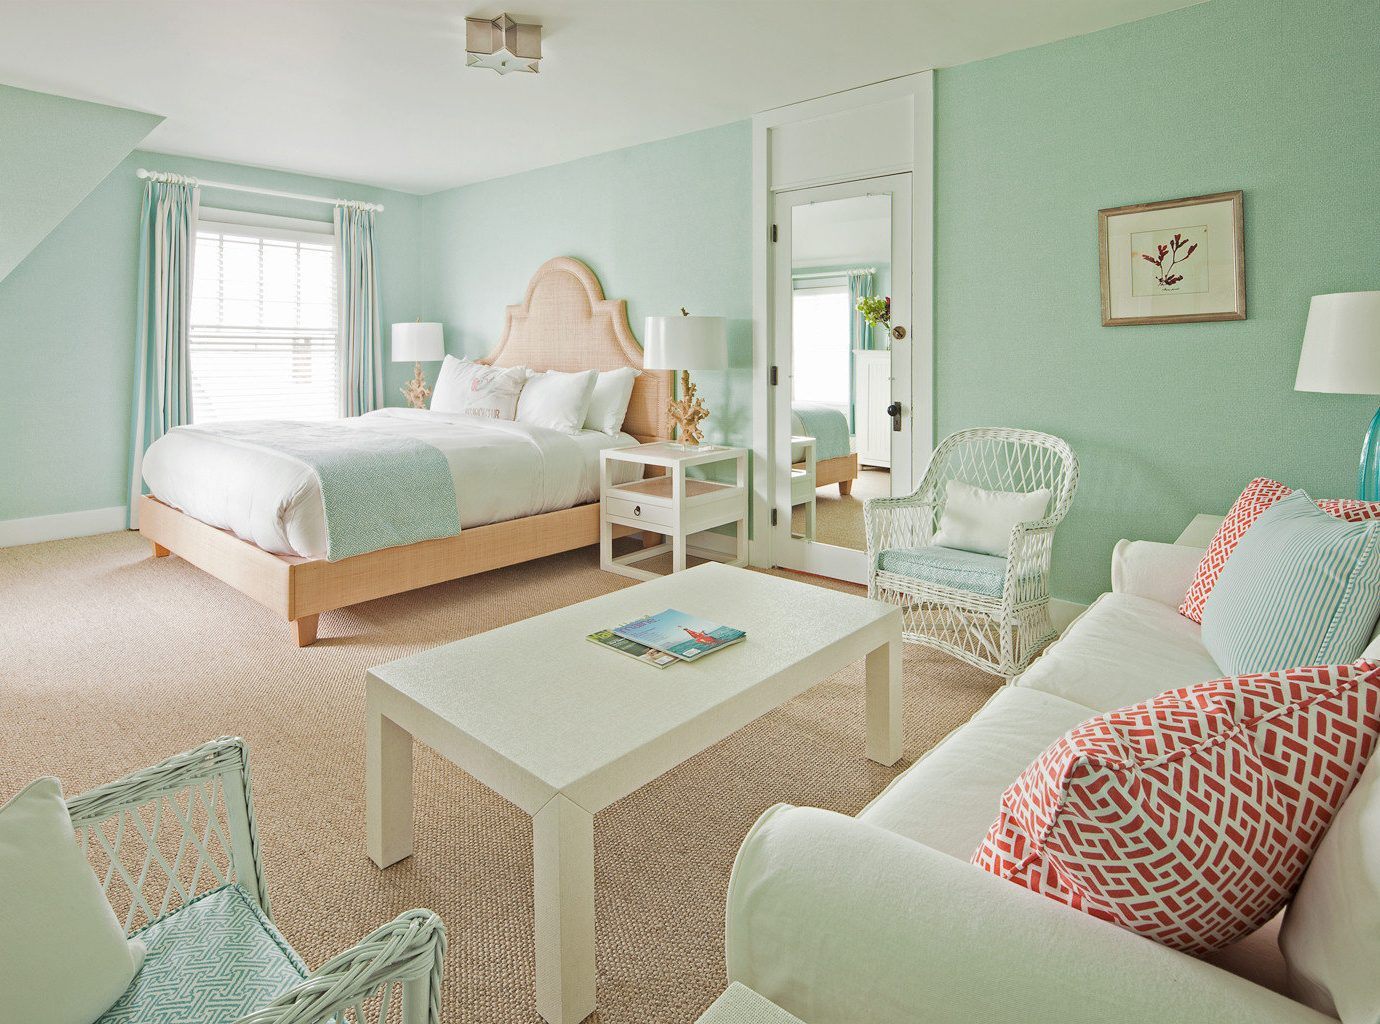 Bedroom at the Tides Beach Club, Maine